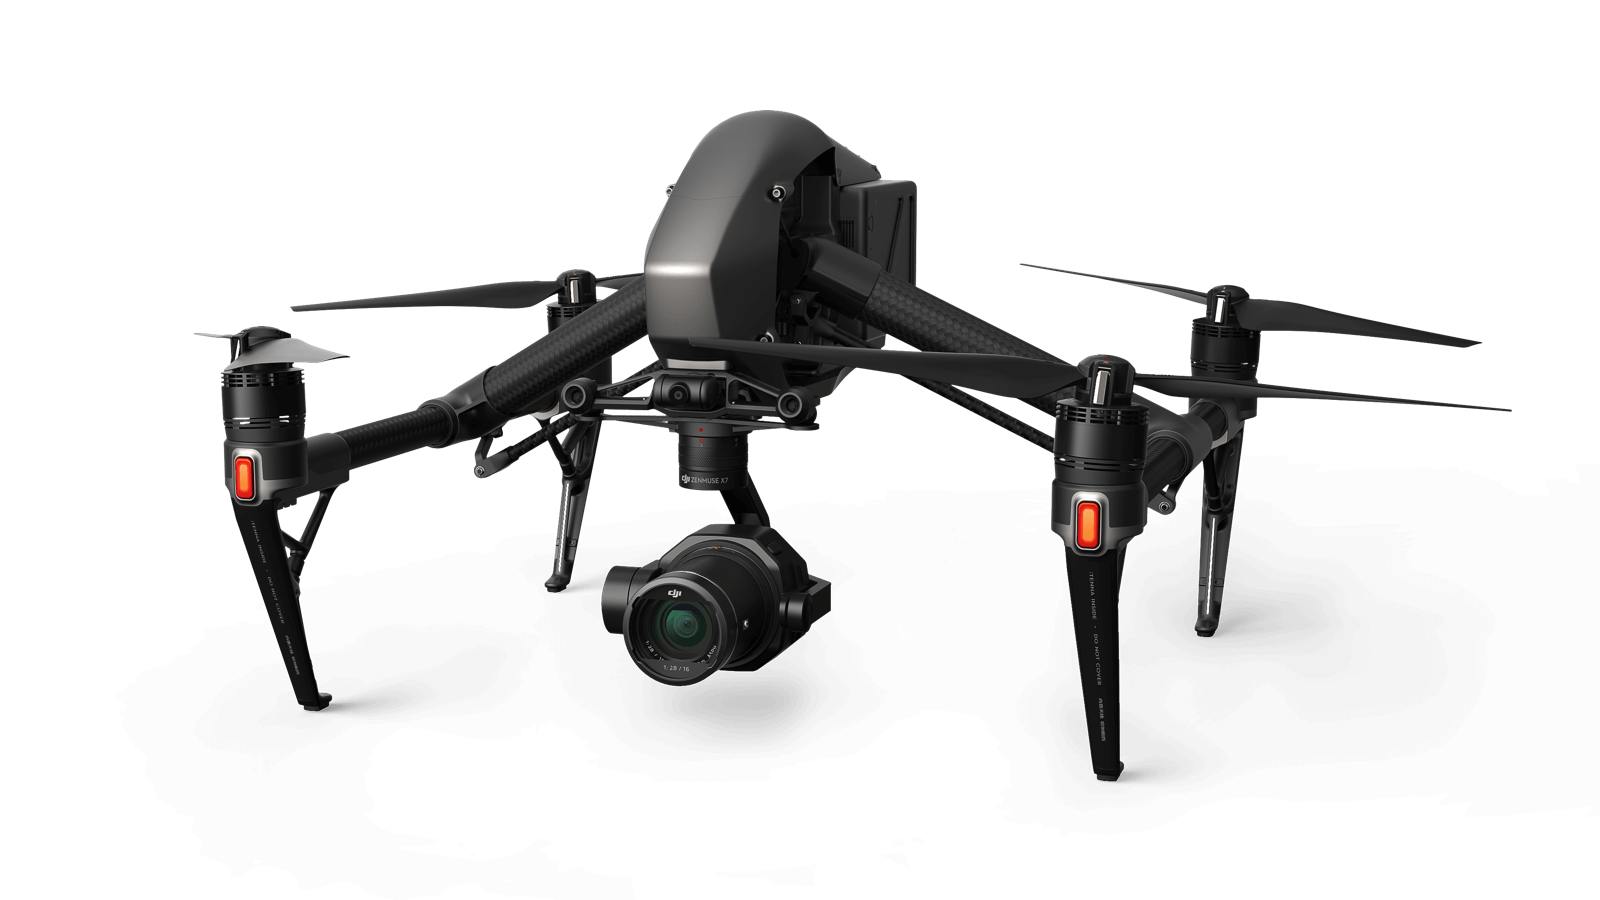 Dji Zenmuse X7 Cinematic Vision Rising Phantom 2 Wiring Diagram Motor The Is A Compact Super 35 Camera With An Integrated Gimbal Made For High End Filmmaking That Delivers Stunning Resolution And Image Quality